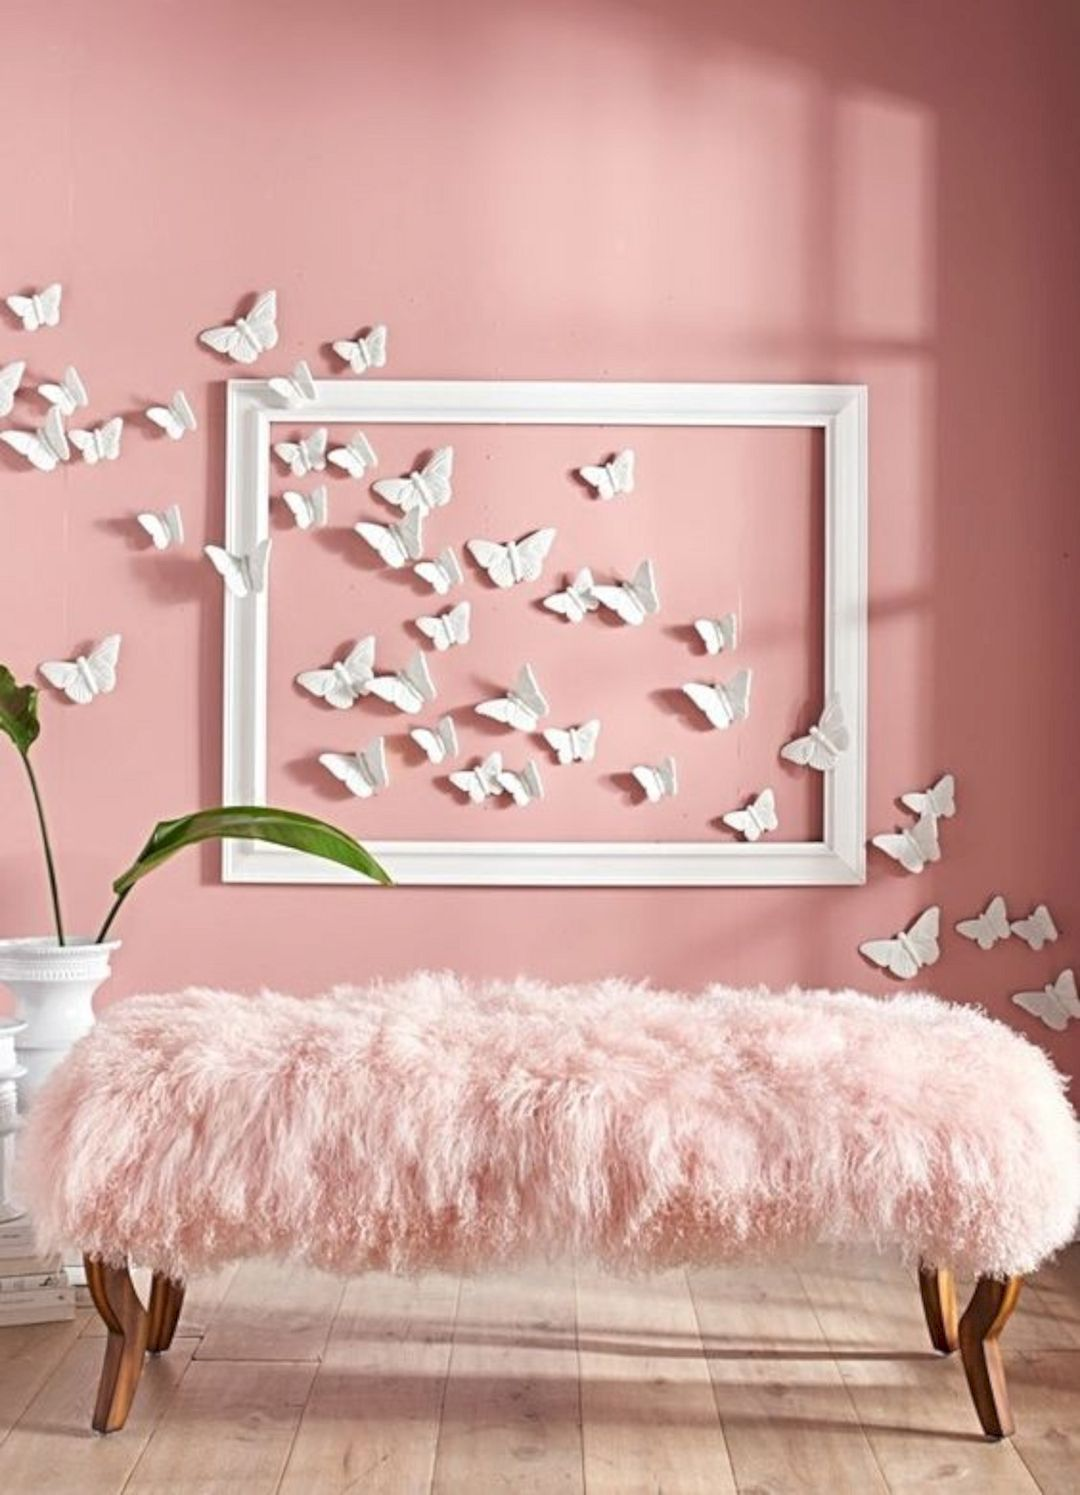 15 Ways to Make Your Walls Beautiful with Butterfly Decorations ...